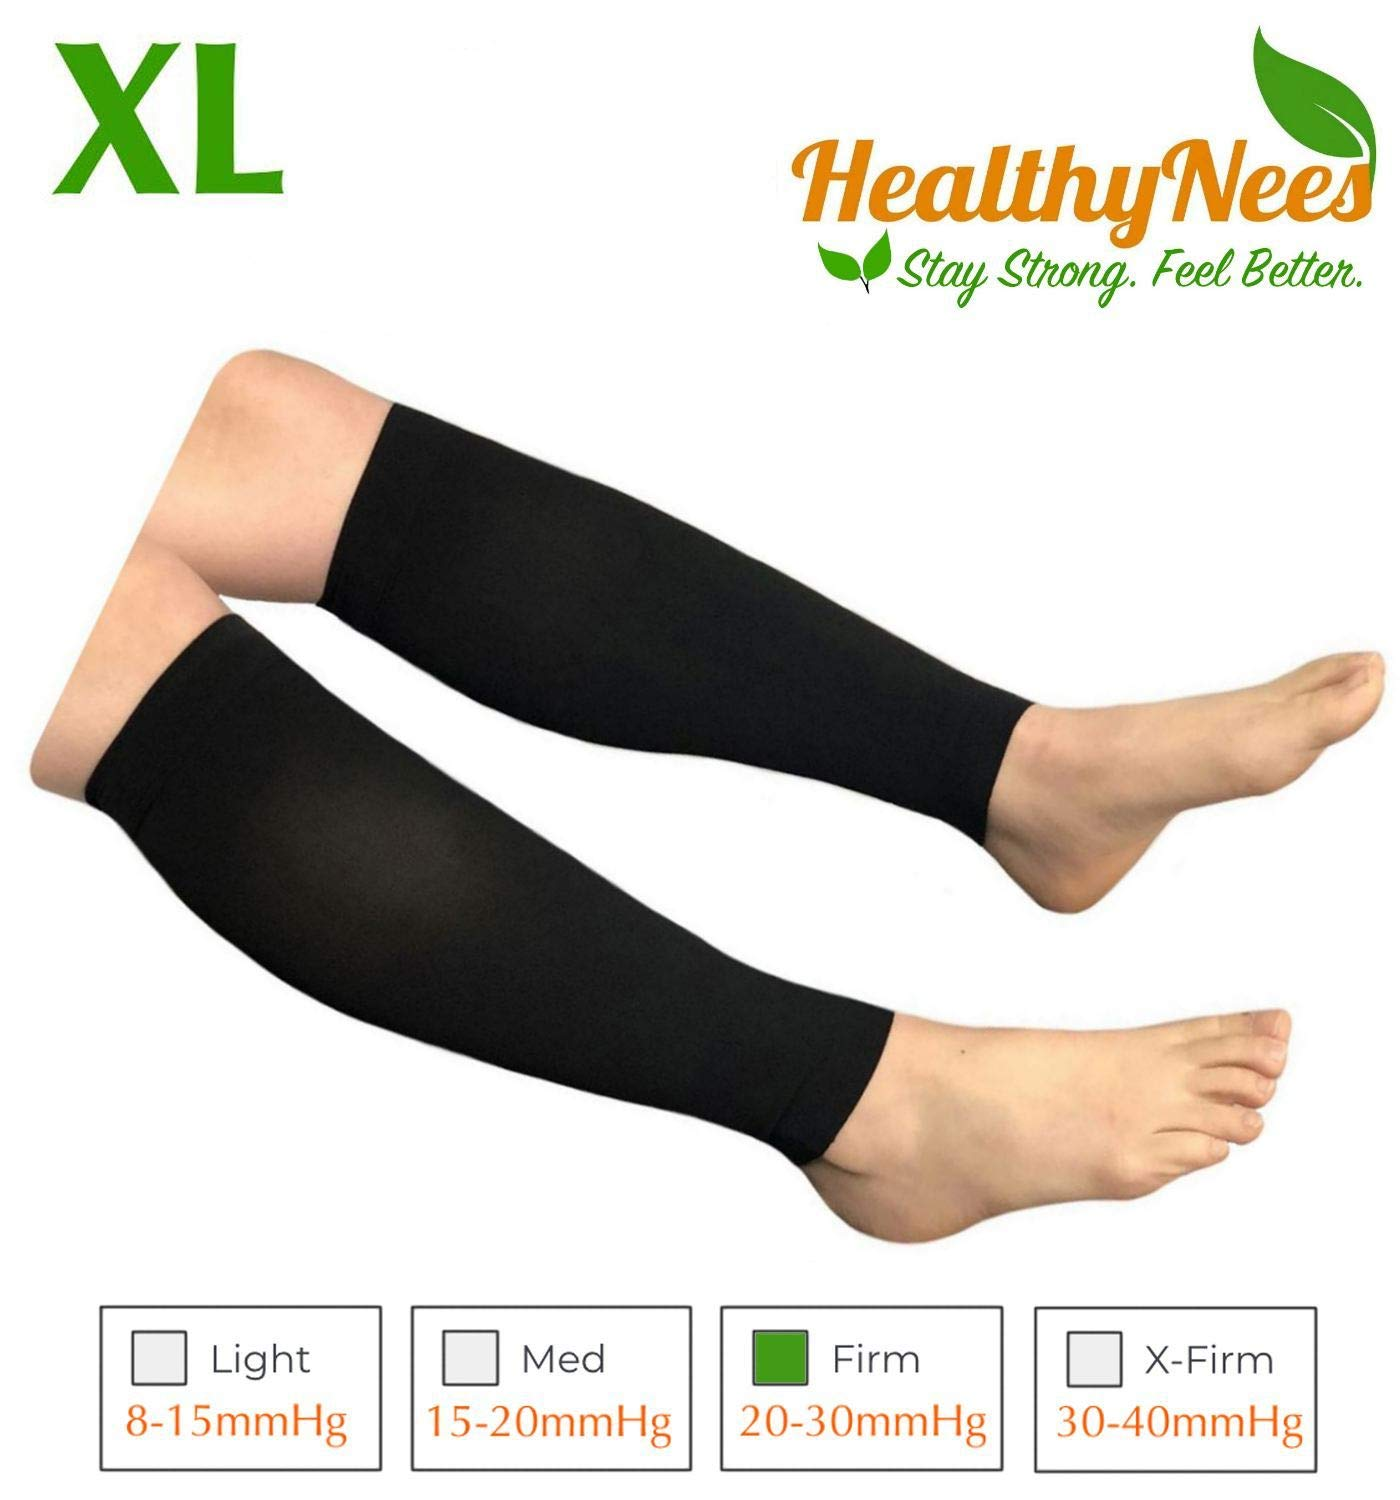 HealthyNees Shin Calf Sleeve 20-30 mmHg Medical Compression Circulation Extra Wide Plus Size Big Tall Leg Thick Calves Firm Support (Black, Regular Calf XL) by HealthyNees